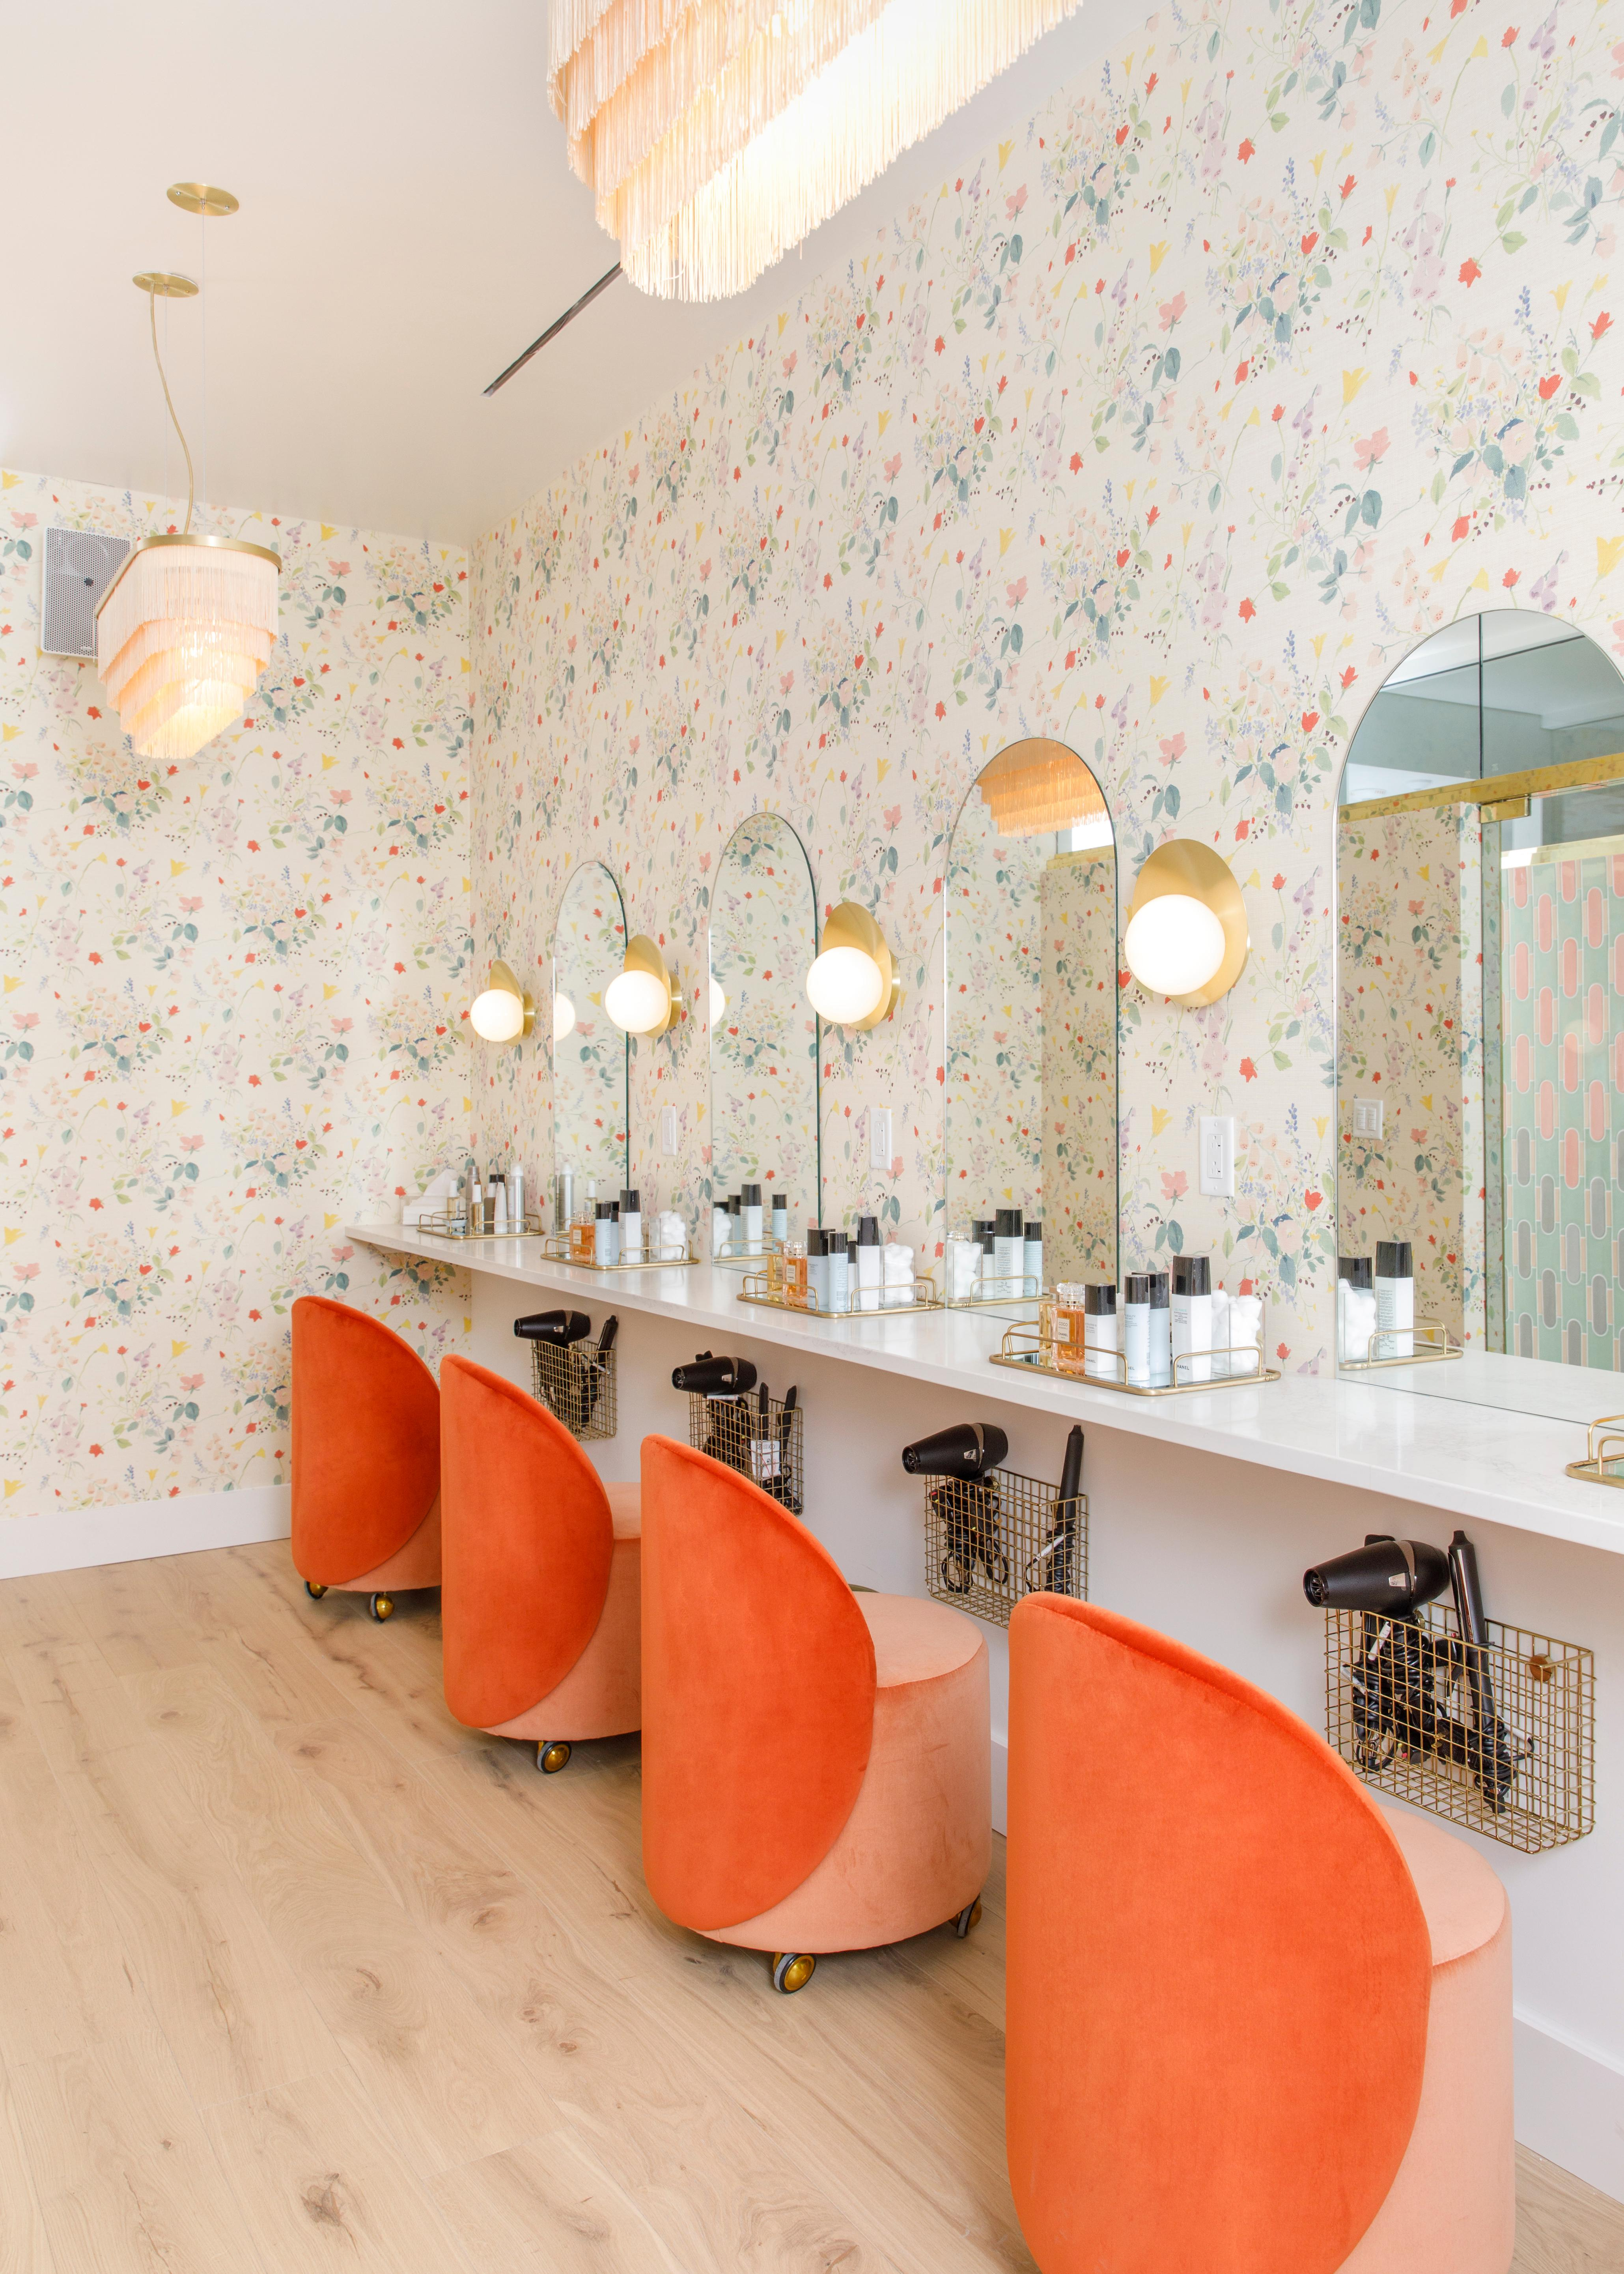 The beauty room is equipped with hair dryers, curlers, straighteners and free Chanel products -- The Wing regularly partners with Chanel for events and promotions. (Image: Courtesy The Wing)